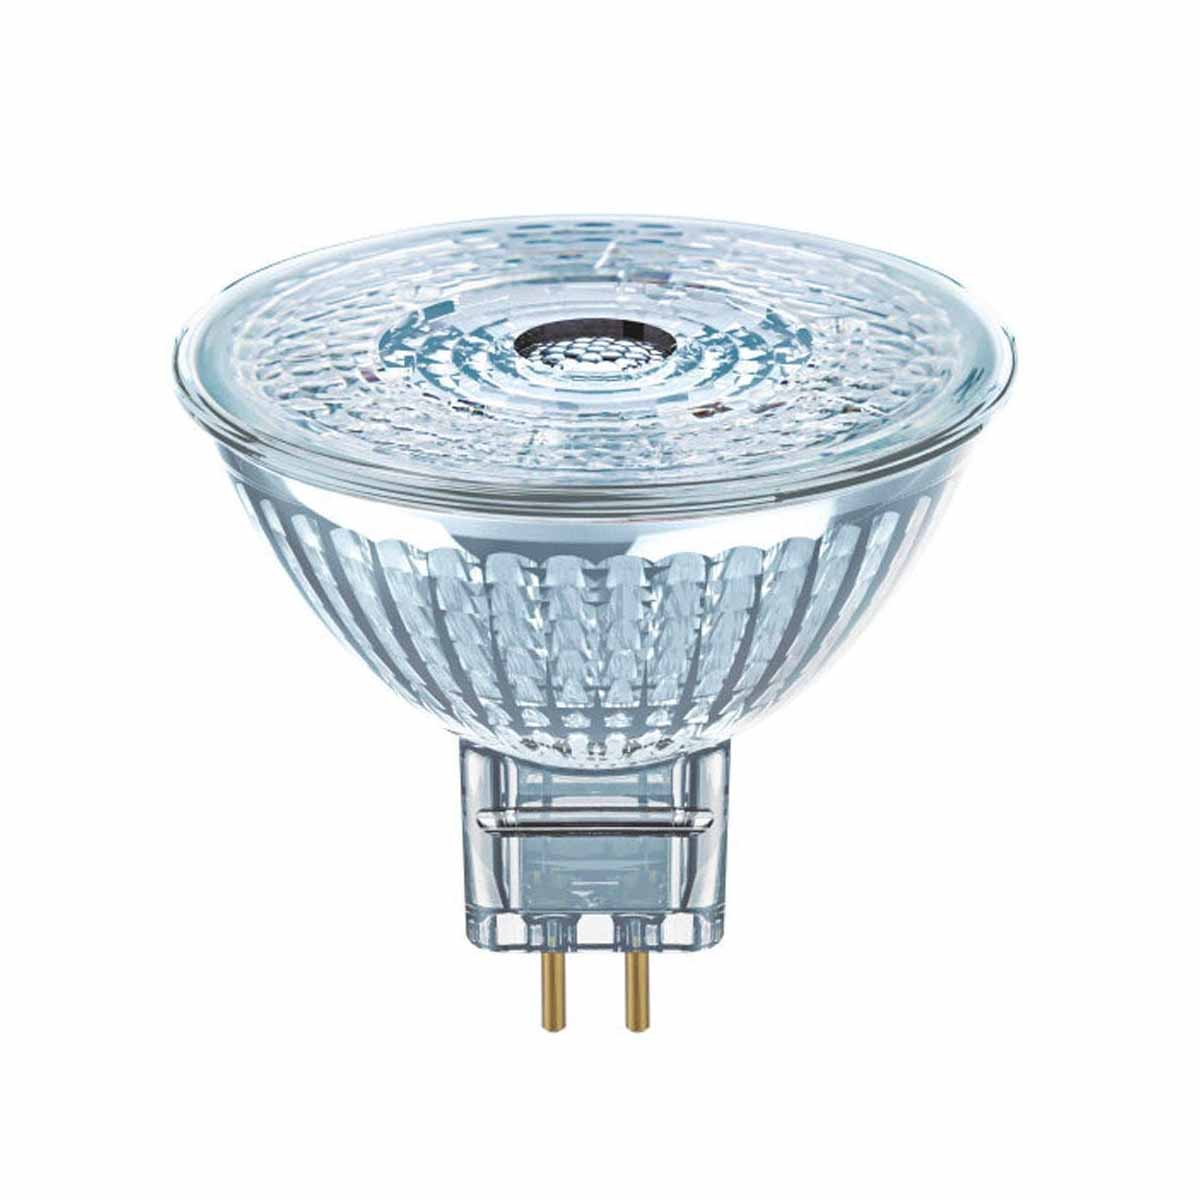 094956 LED MR16 36O 350lm/827 DIM